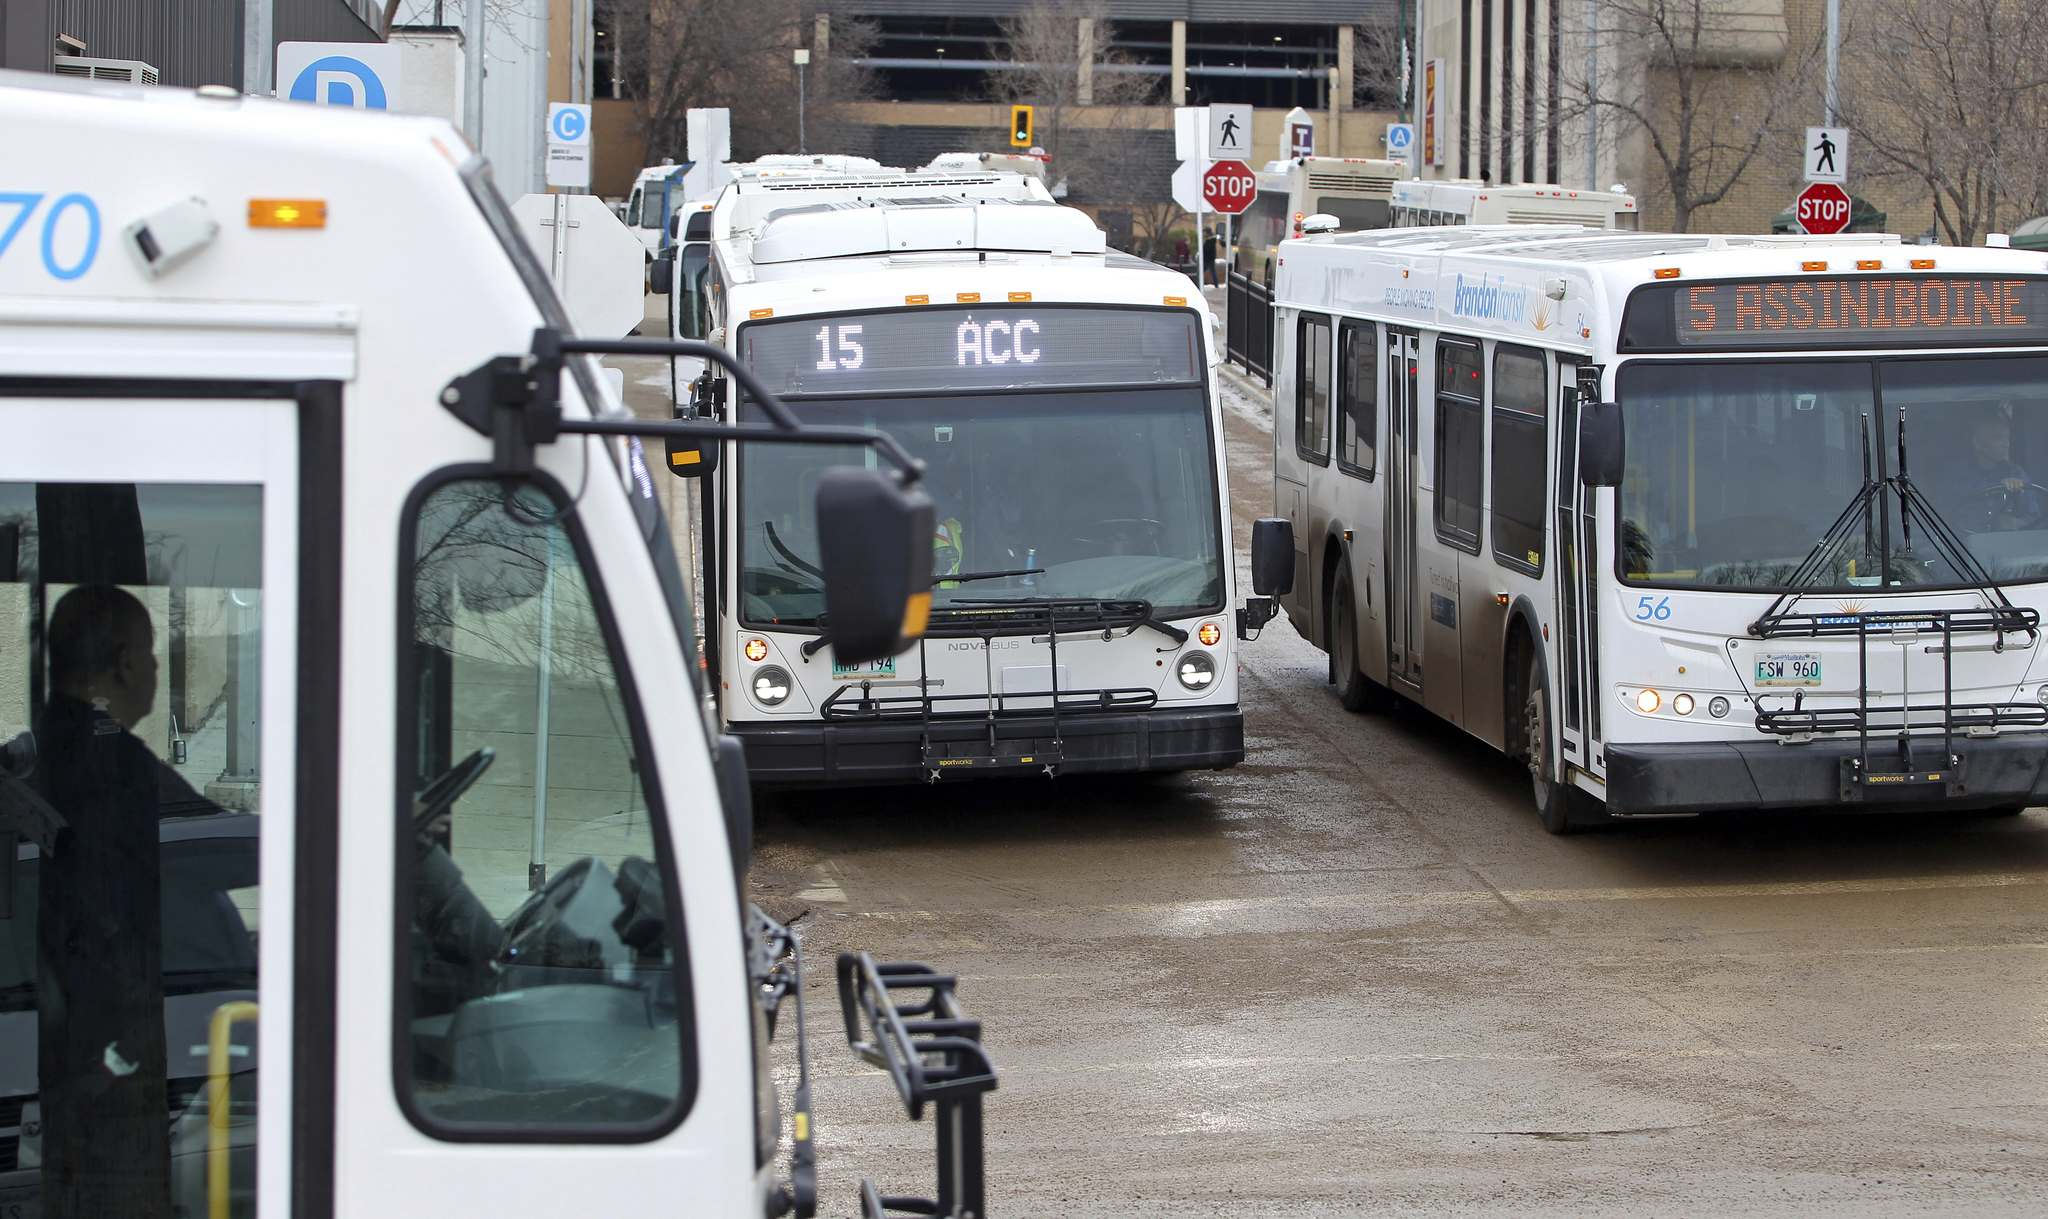 Brandon Transit riders could soon be able to request a ride whenever they need one after the city released a request for proposals in May. It's not decided whether the buses that pick people up would be traditional city buses or Access Transit buses. (File)</p></p>